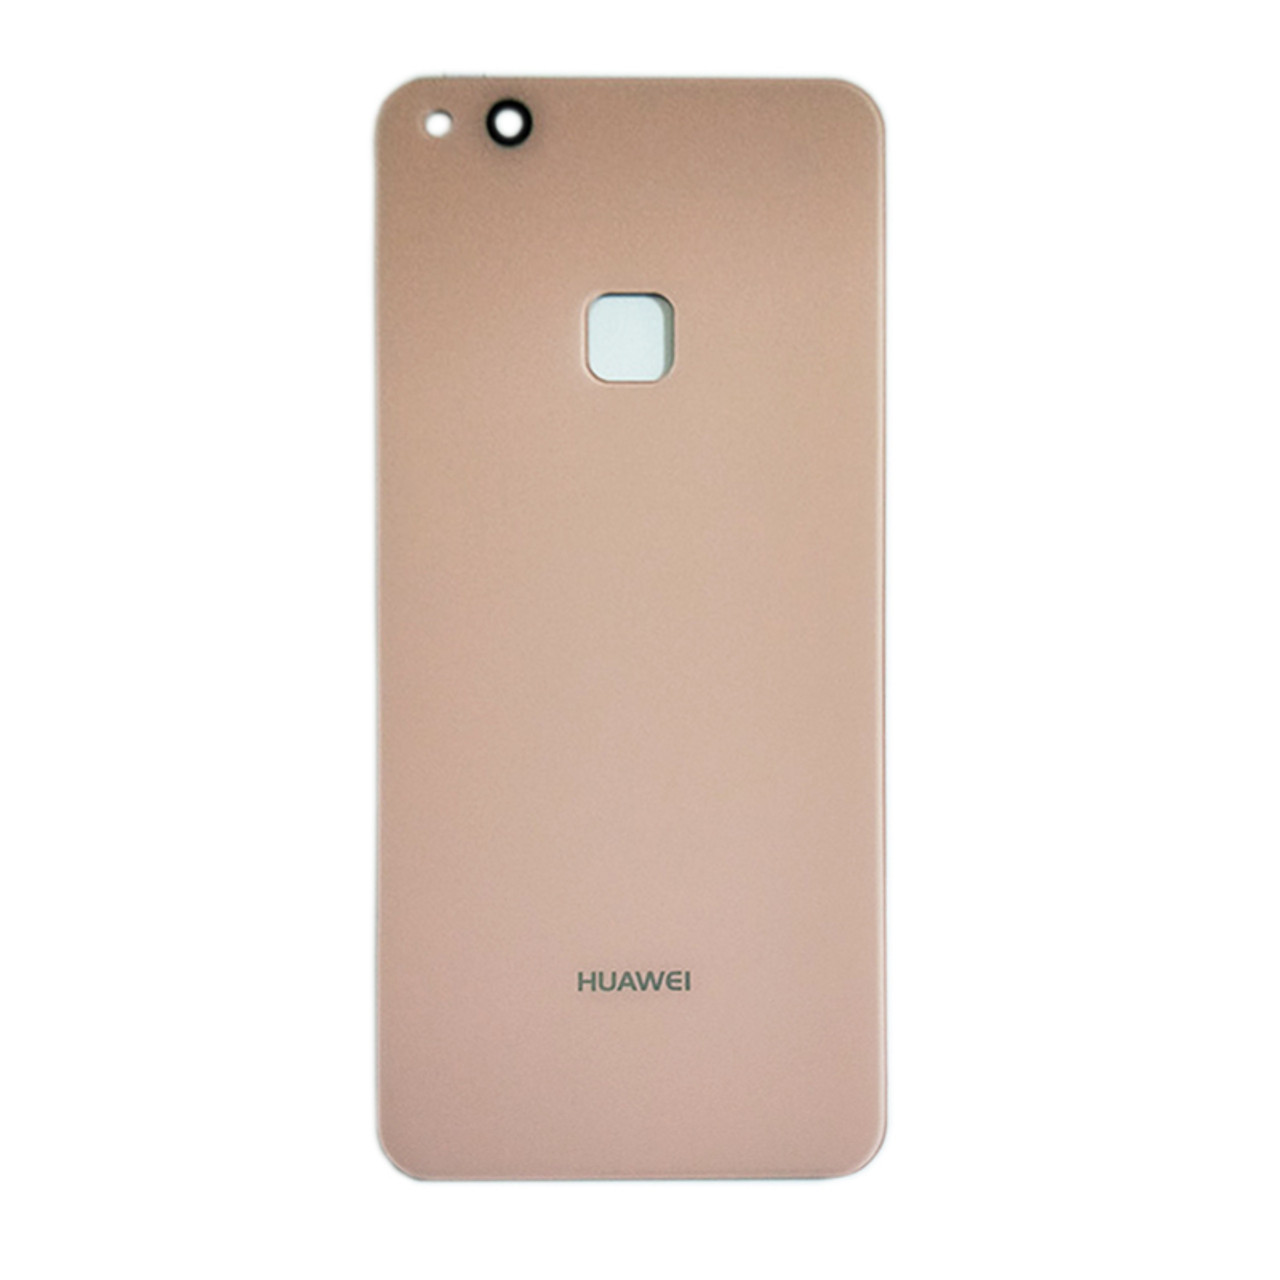 Back Glass Cover for Huawei P10 Lite -Pink